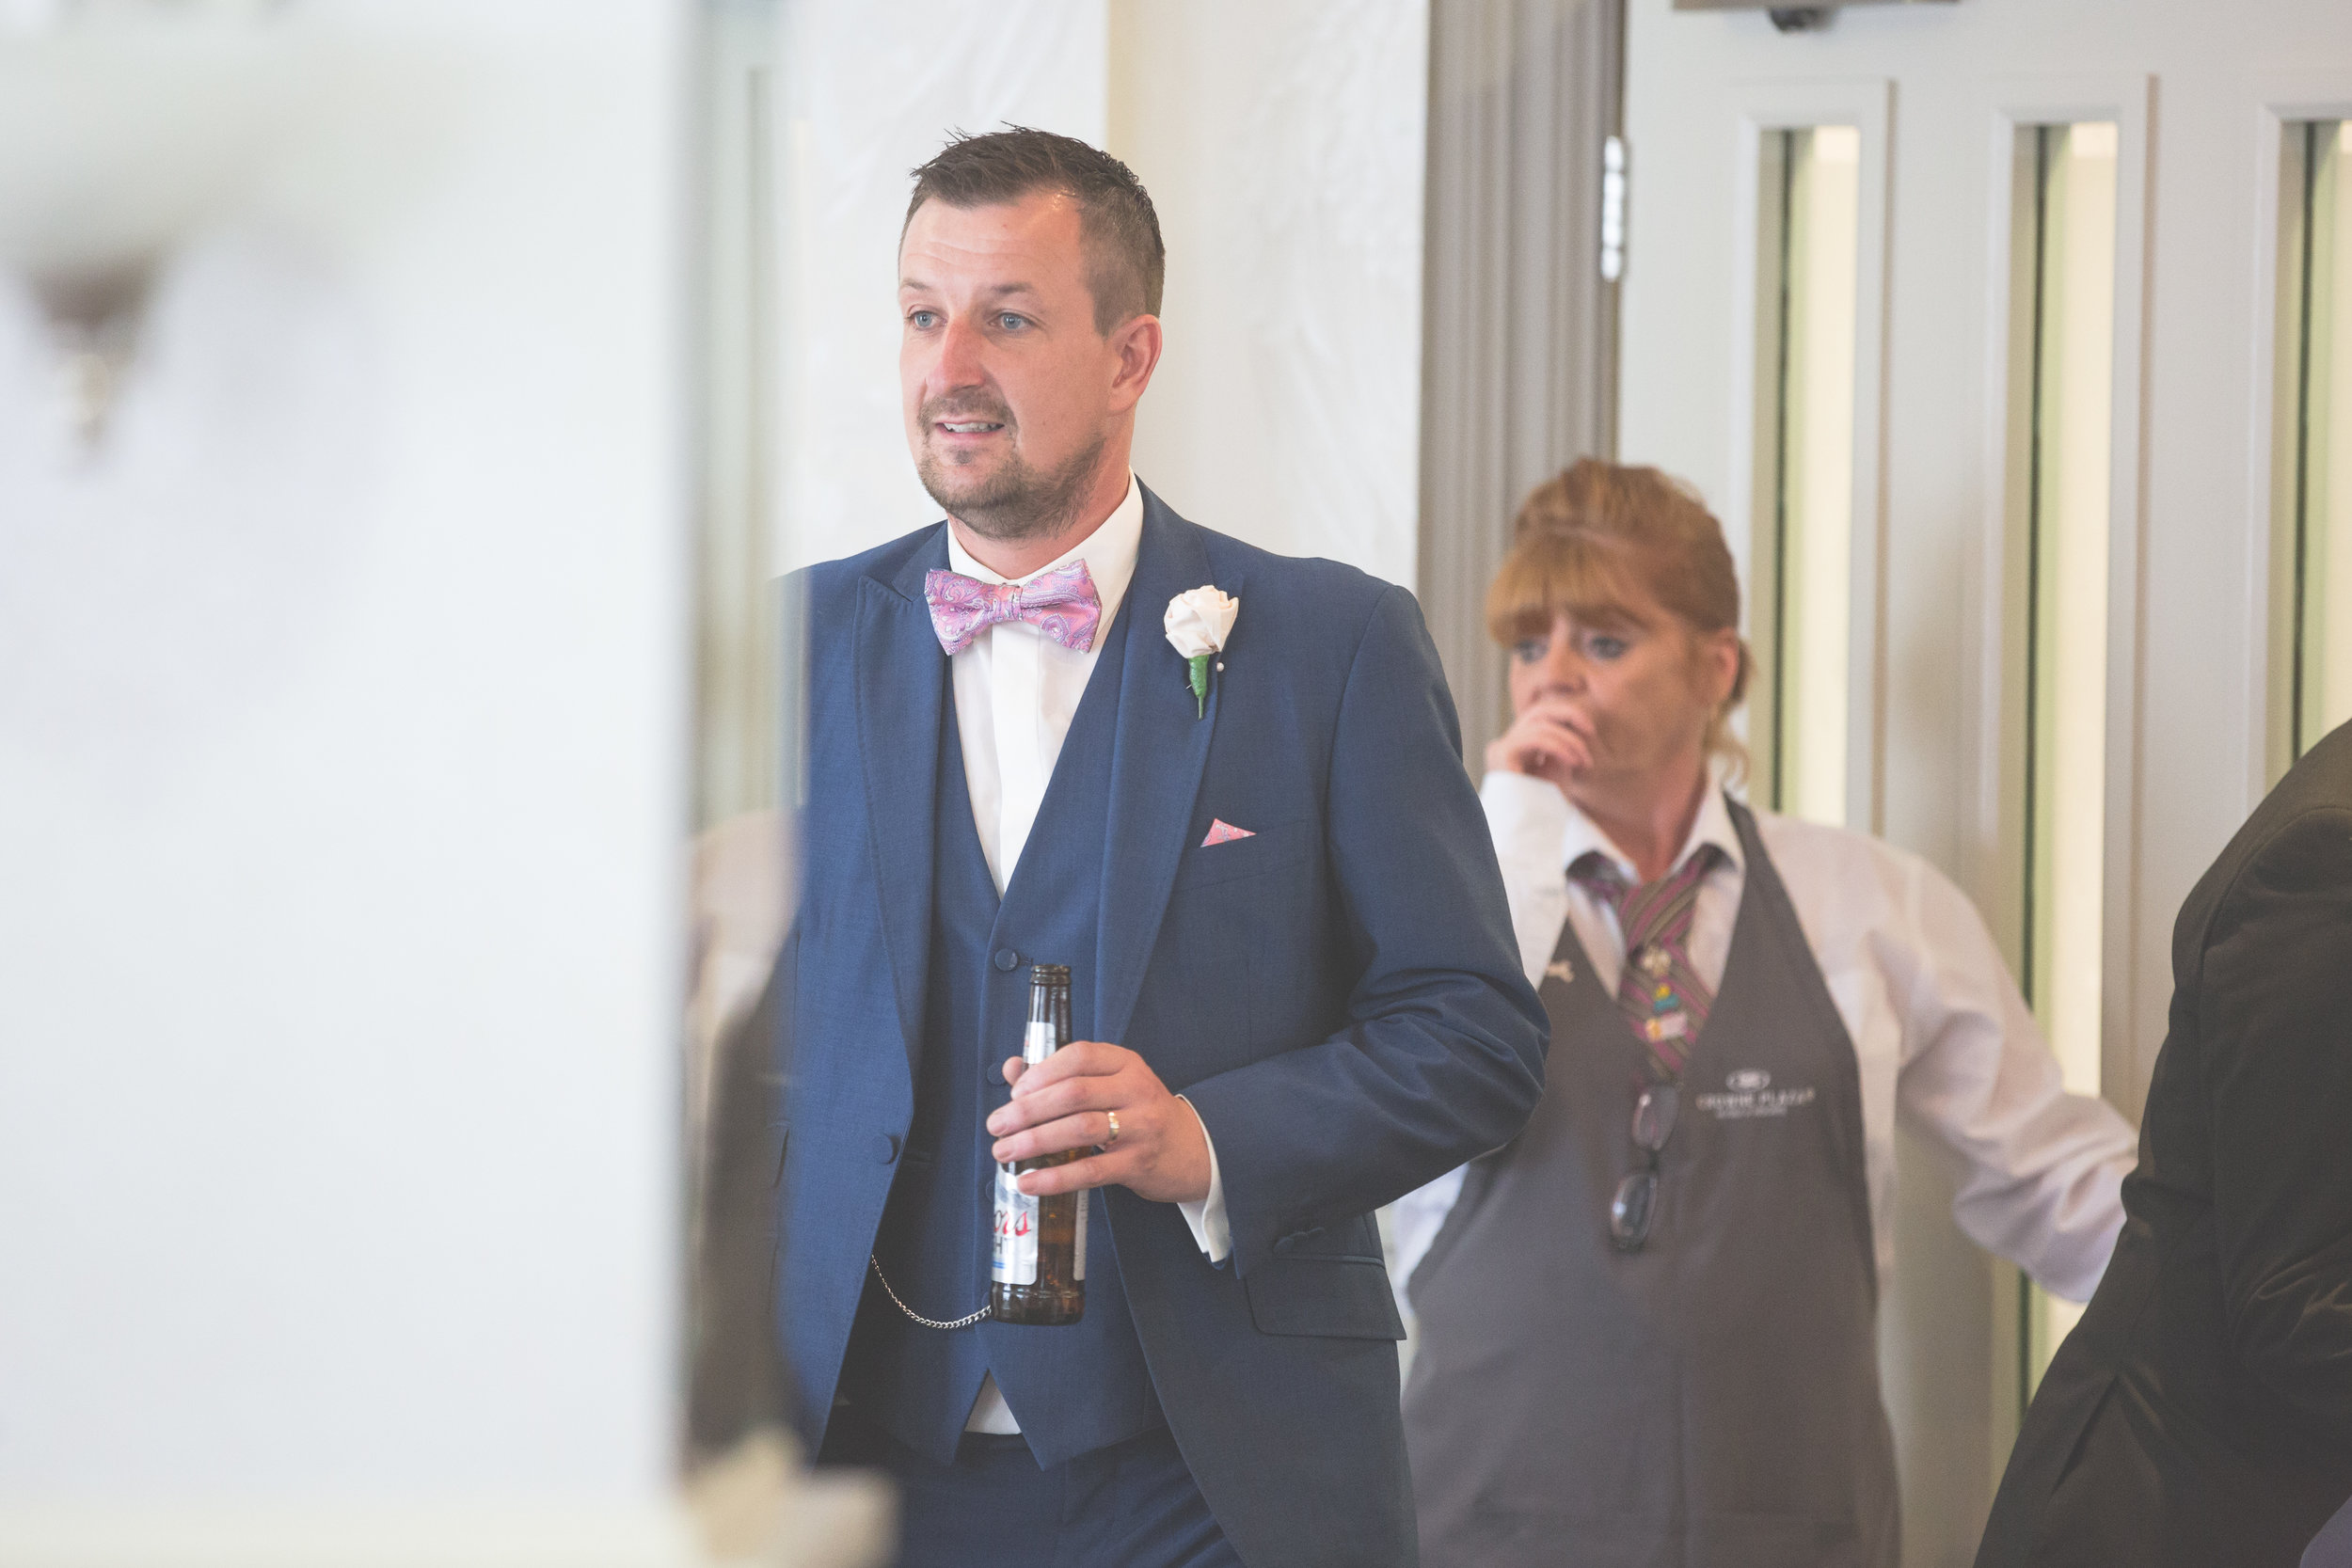 Antoinette & Stephen - Speeches | Brian McEwan Photography | Wedding Photographer Northern Ireland 6.jpg